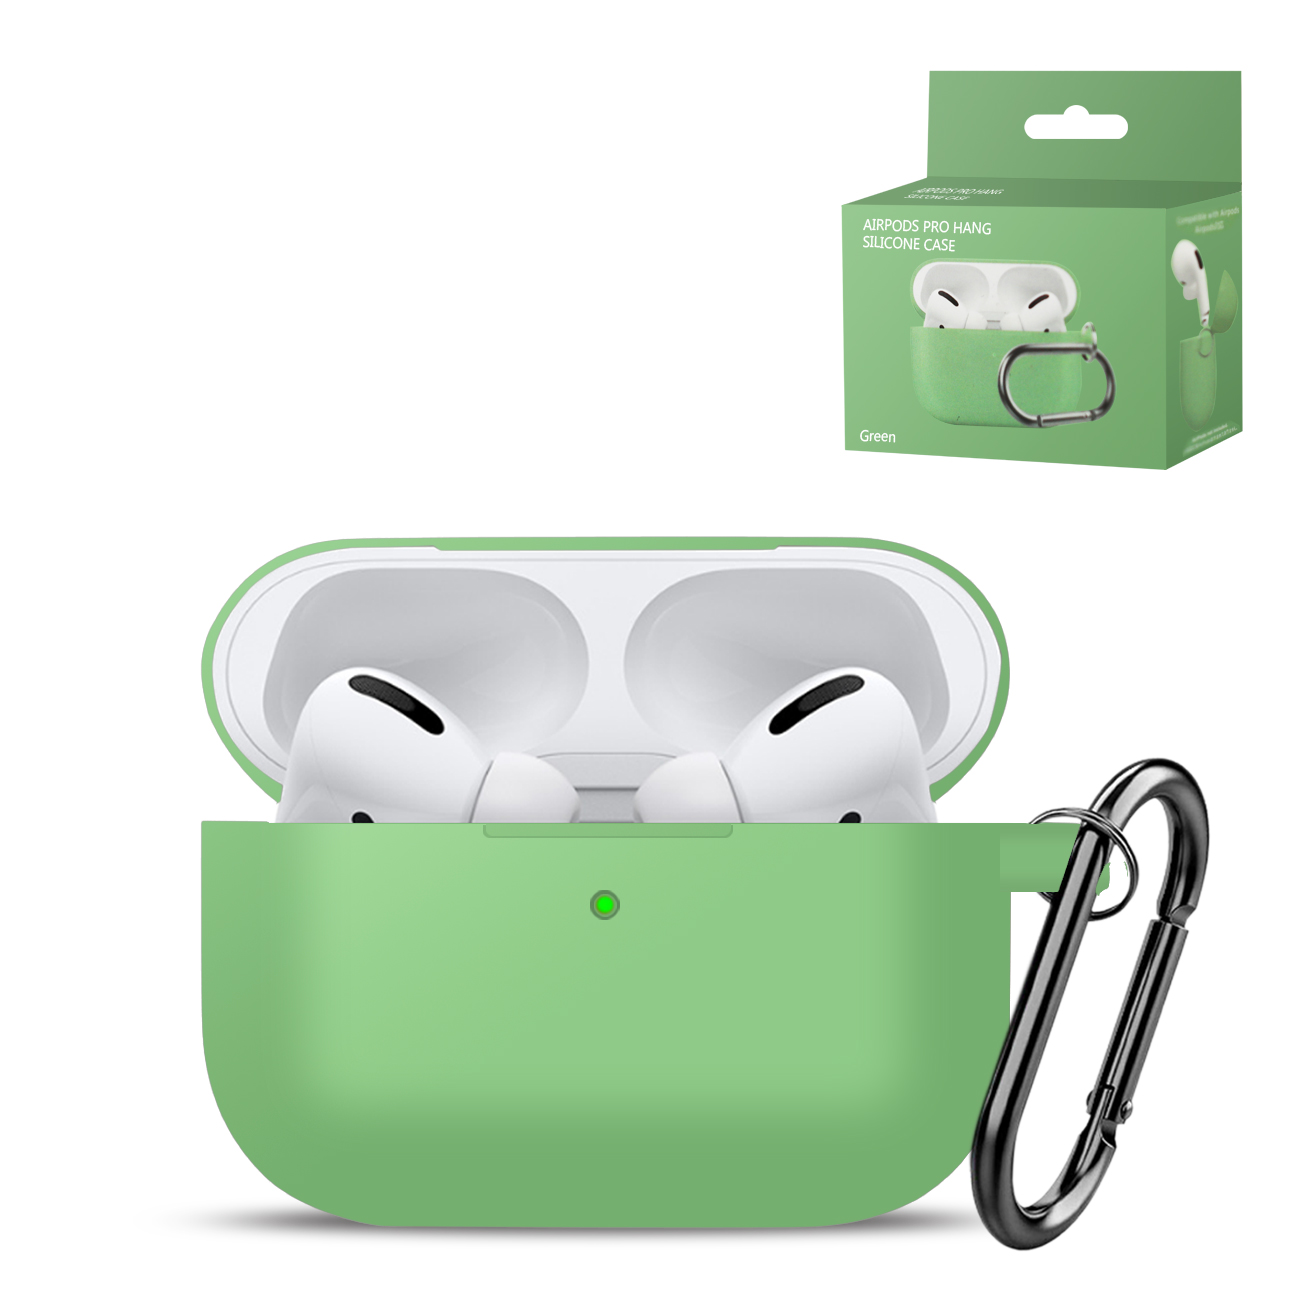 High Quality Airpods Pro Case In Green